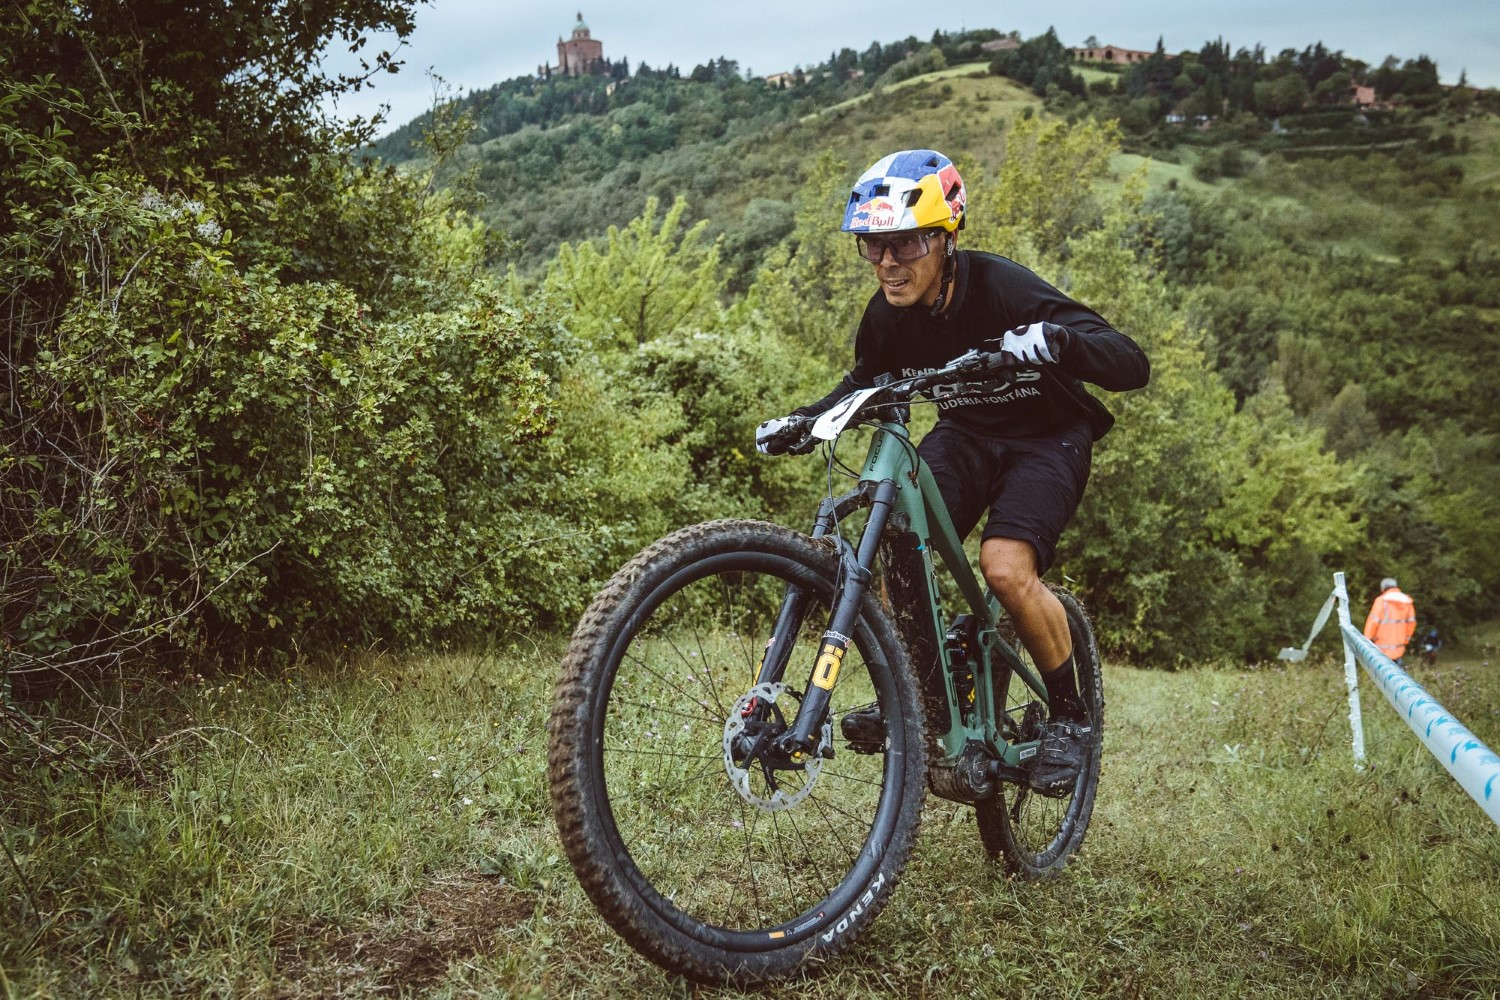 WES BOLOGNA, la seconda tappa del World E-Bike Series 2021